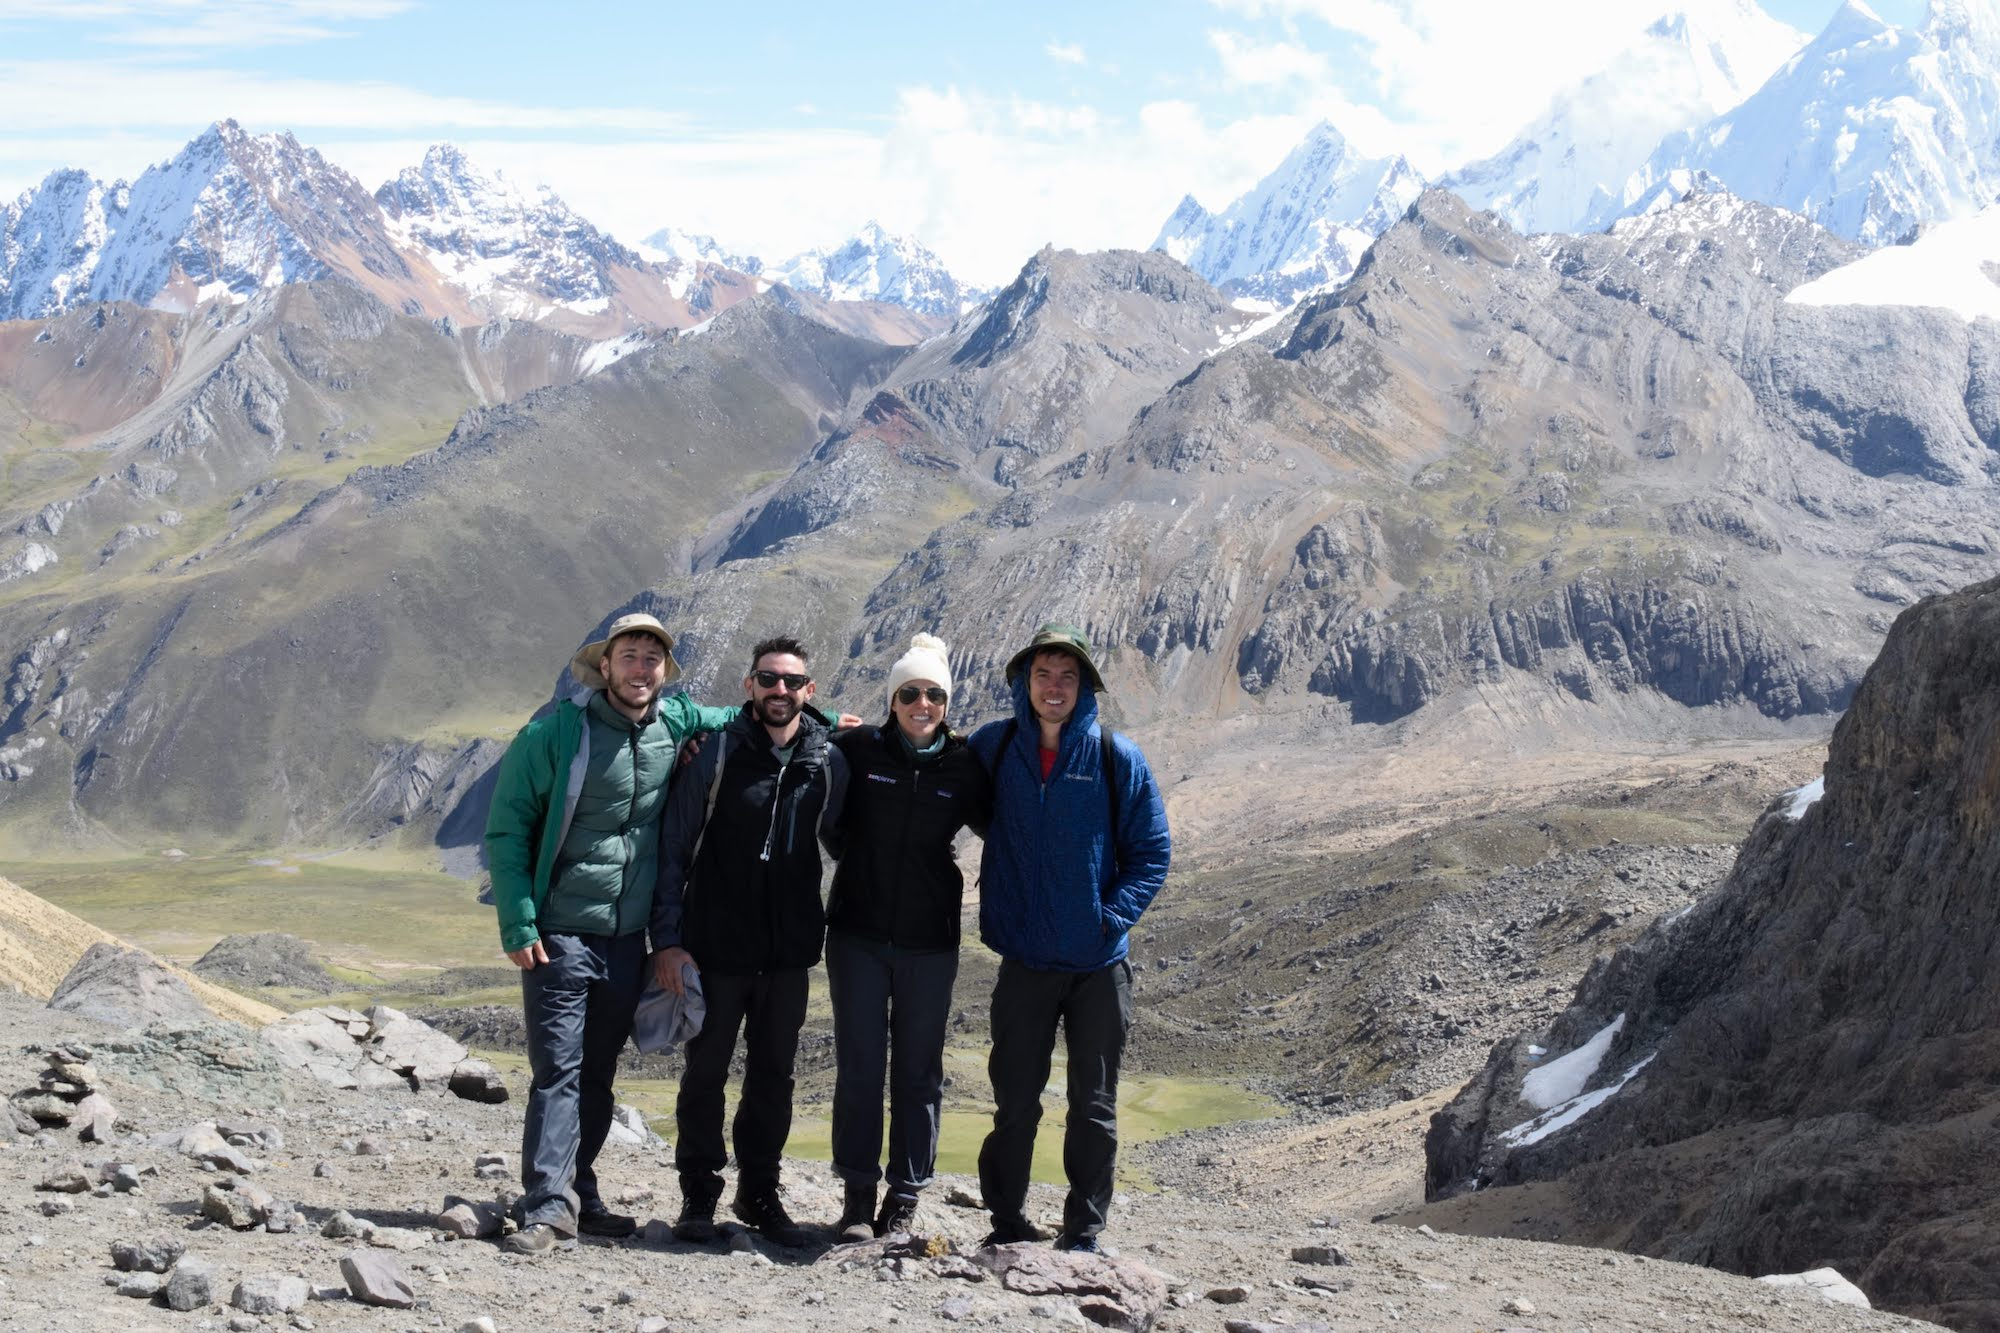 A group photo at the top of a valley